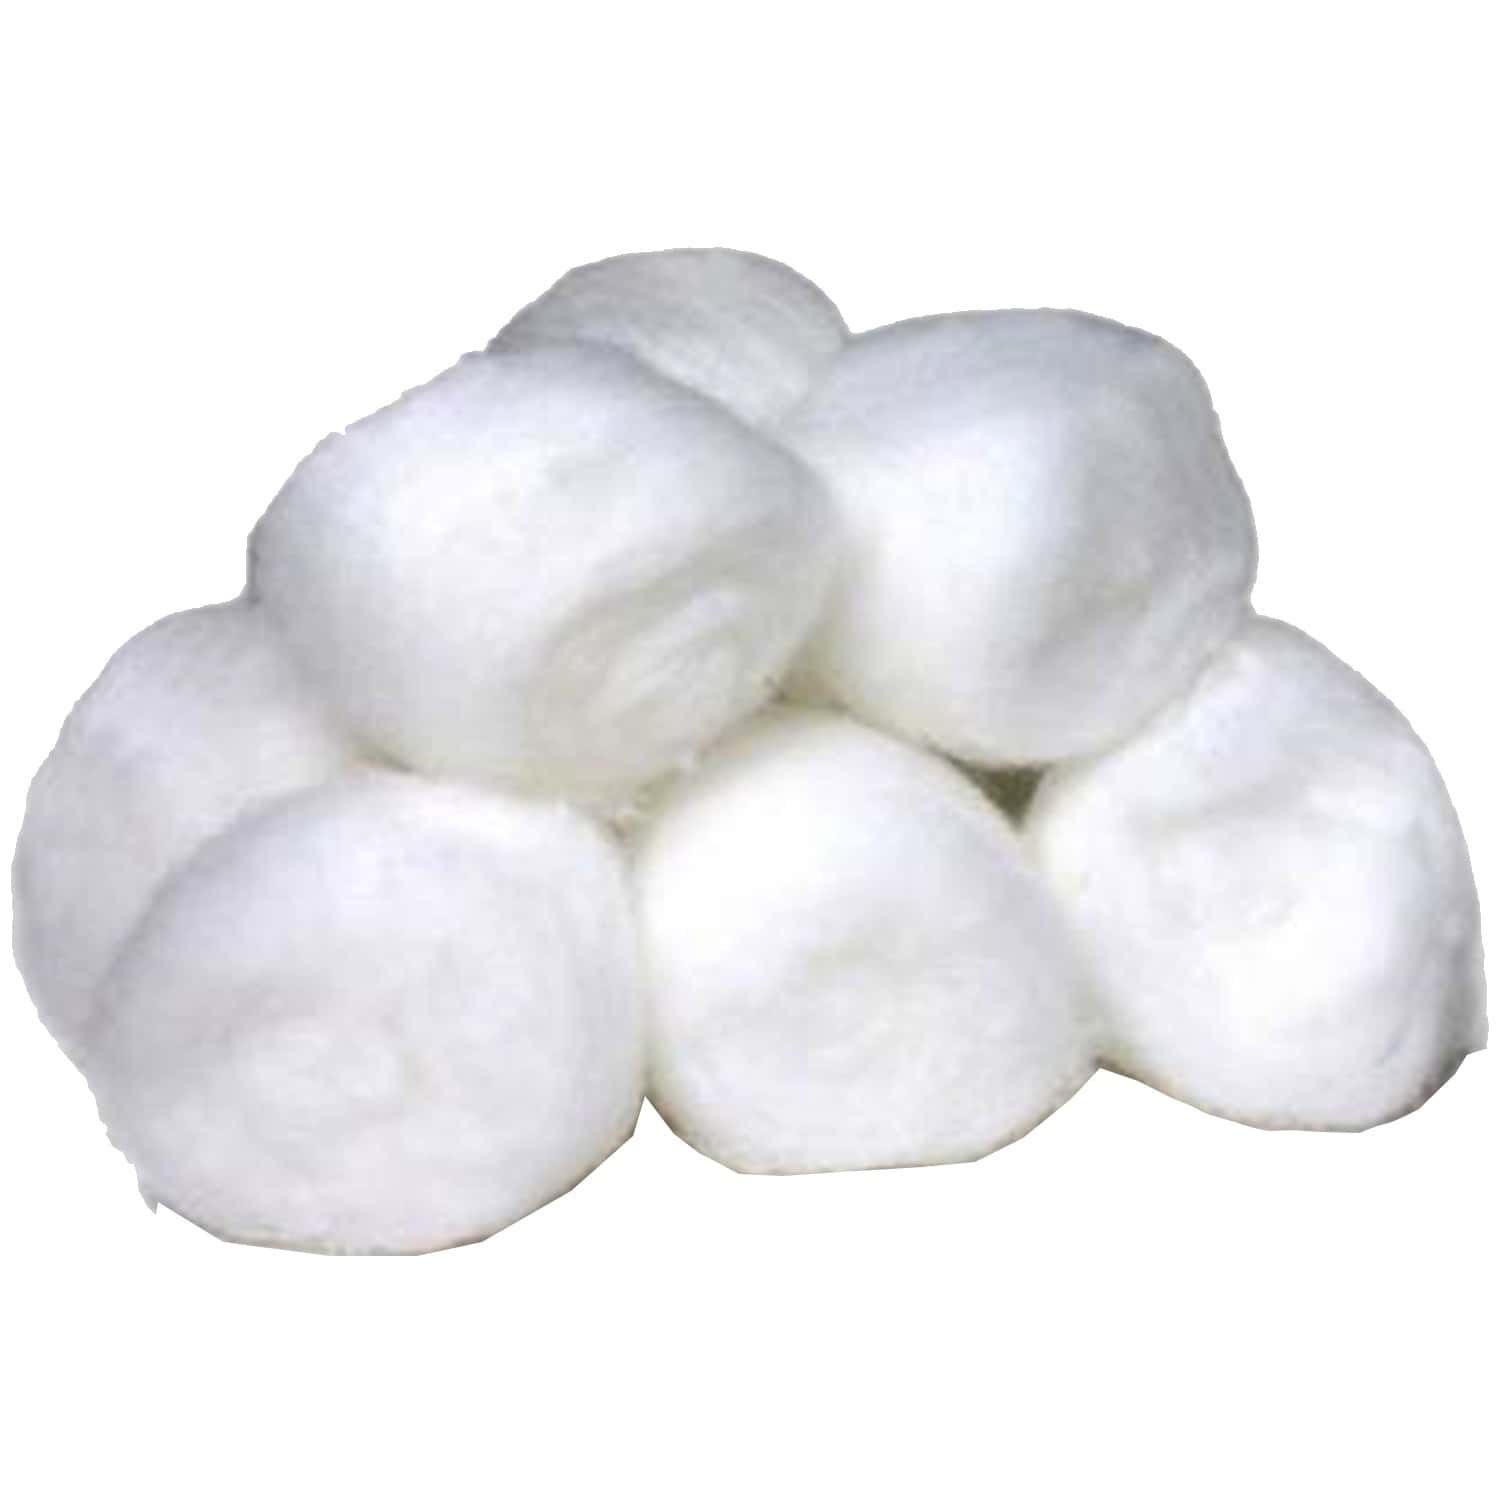 Absorbent Cotton Wool 25 Gm